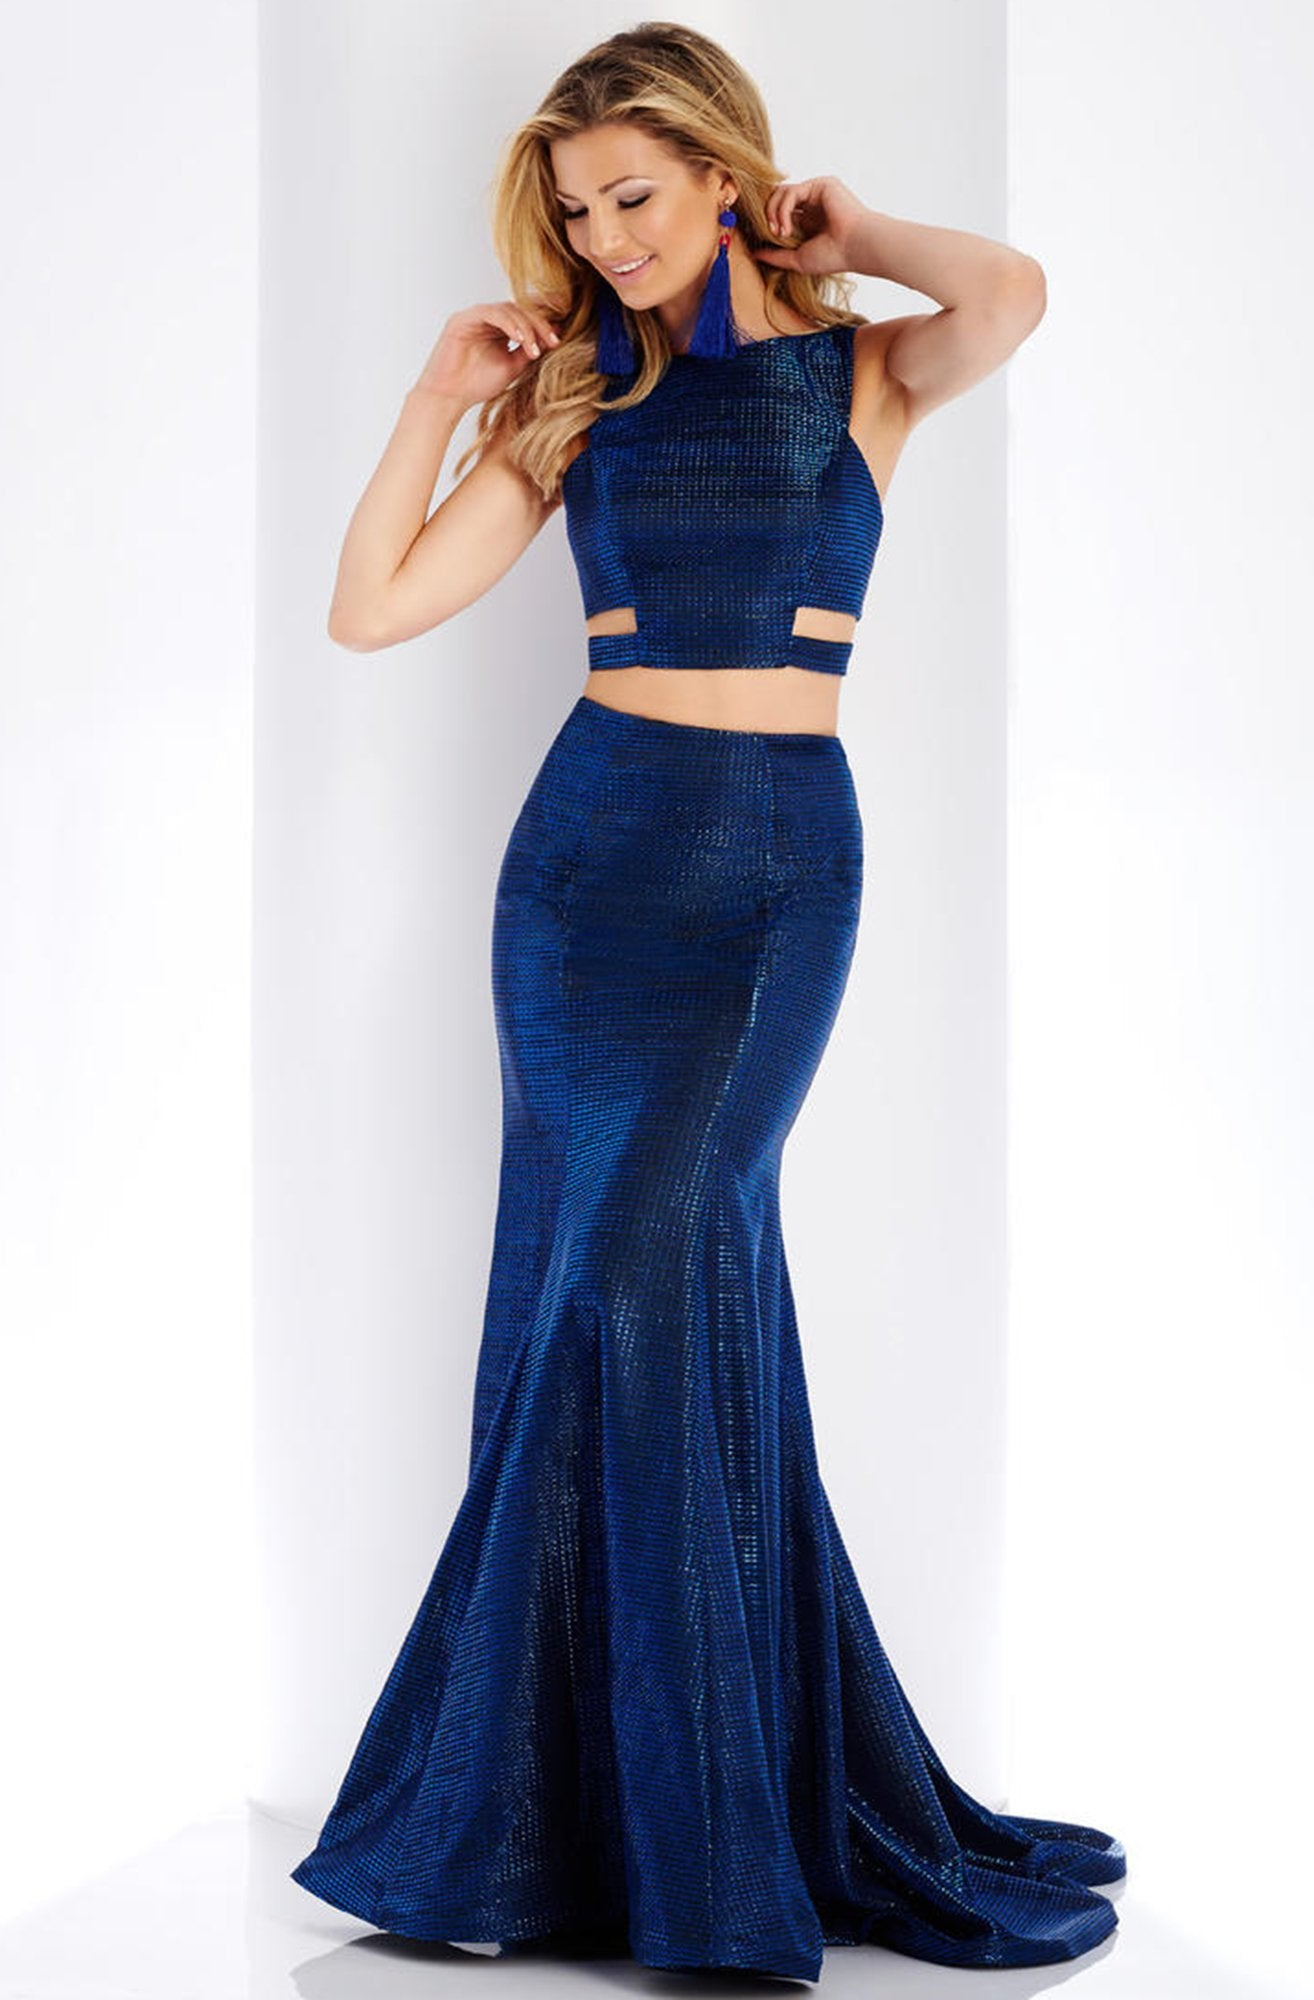 Clarisse - 3486 Two-Piece Novelty Cutout Sheath Gown in Blue